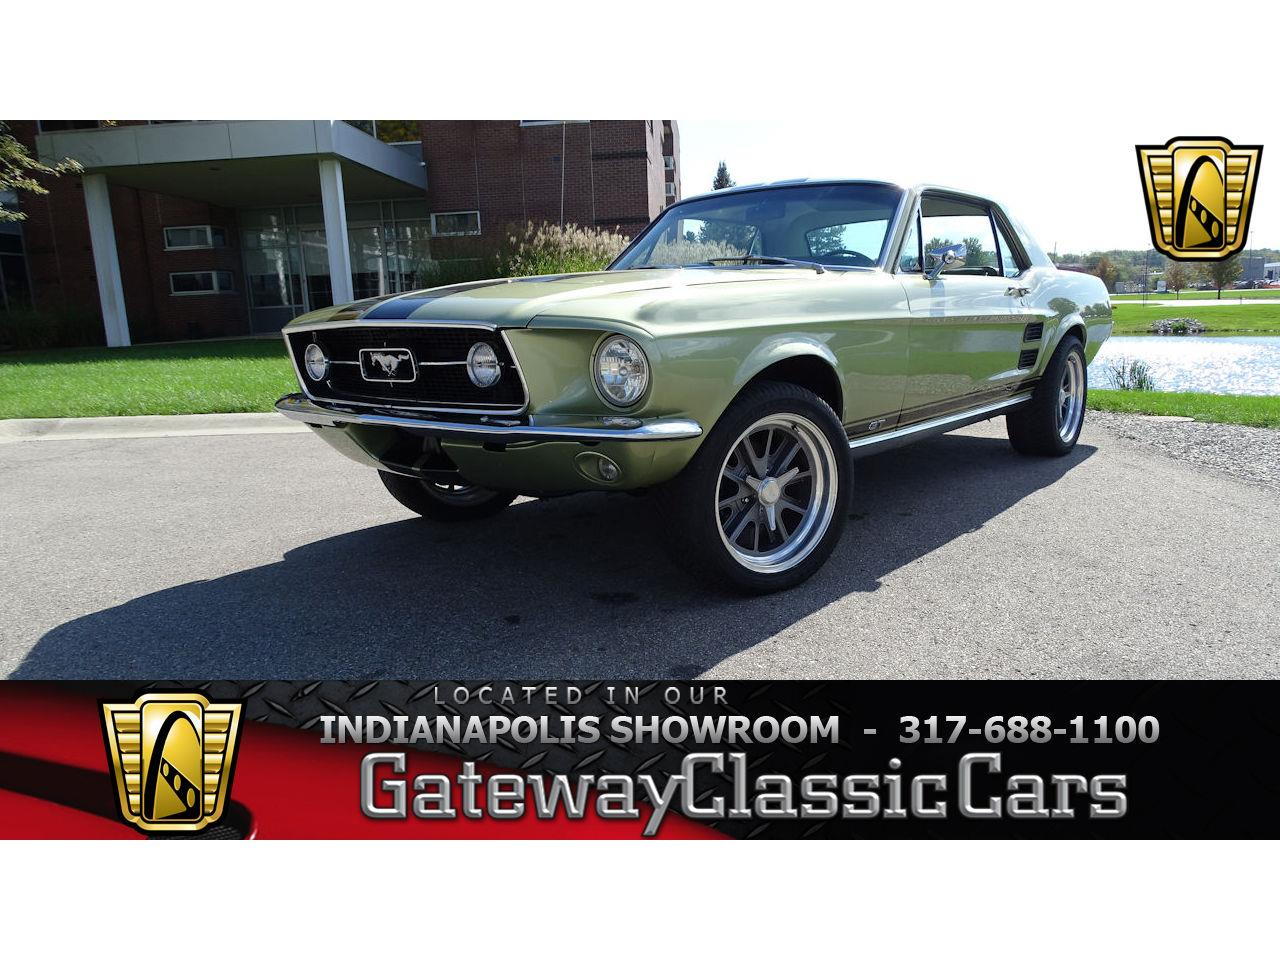 Large picture of 67 mustang opp2